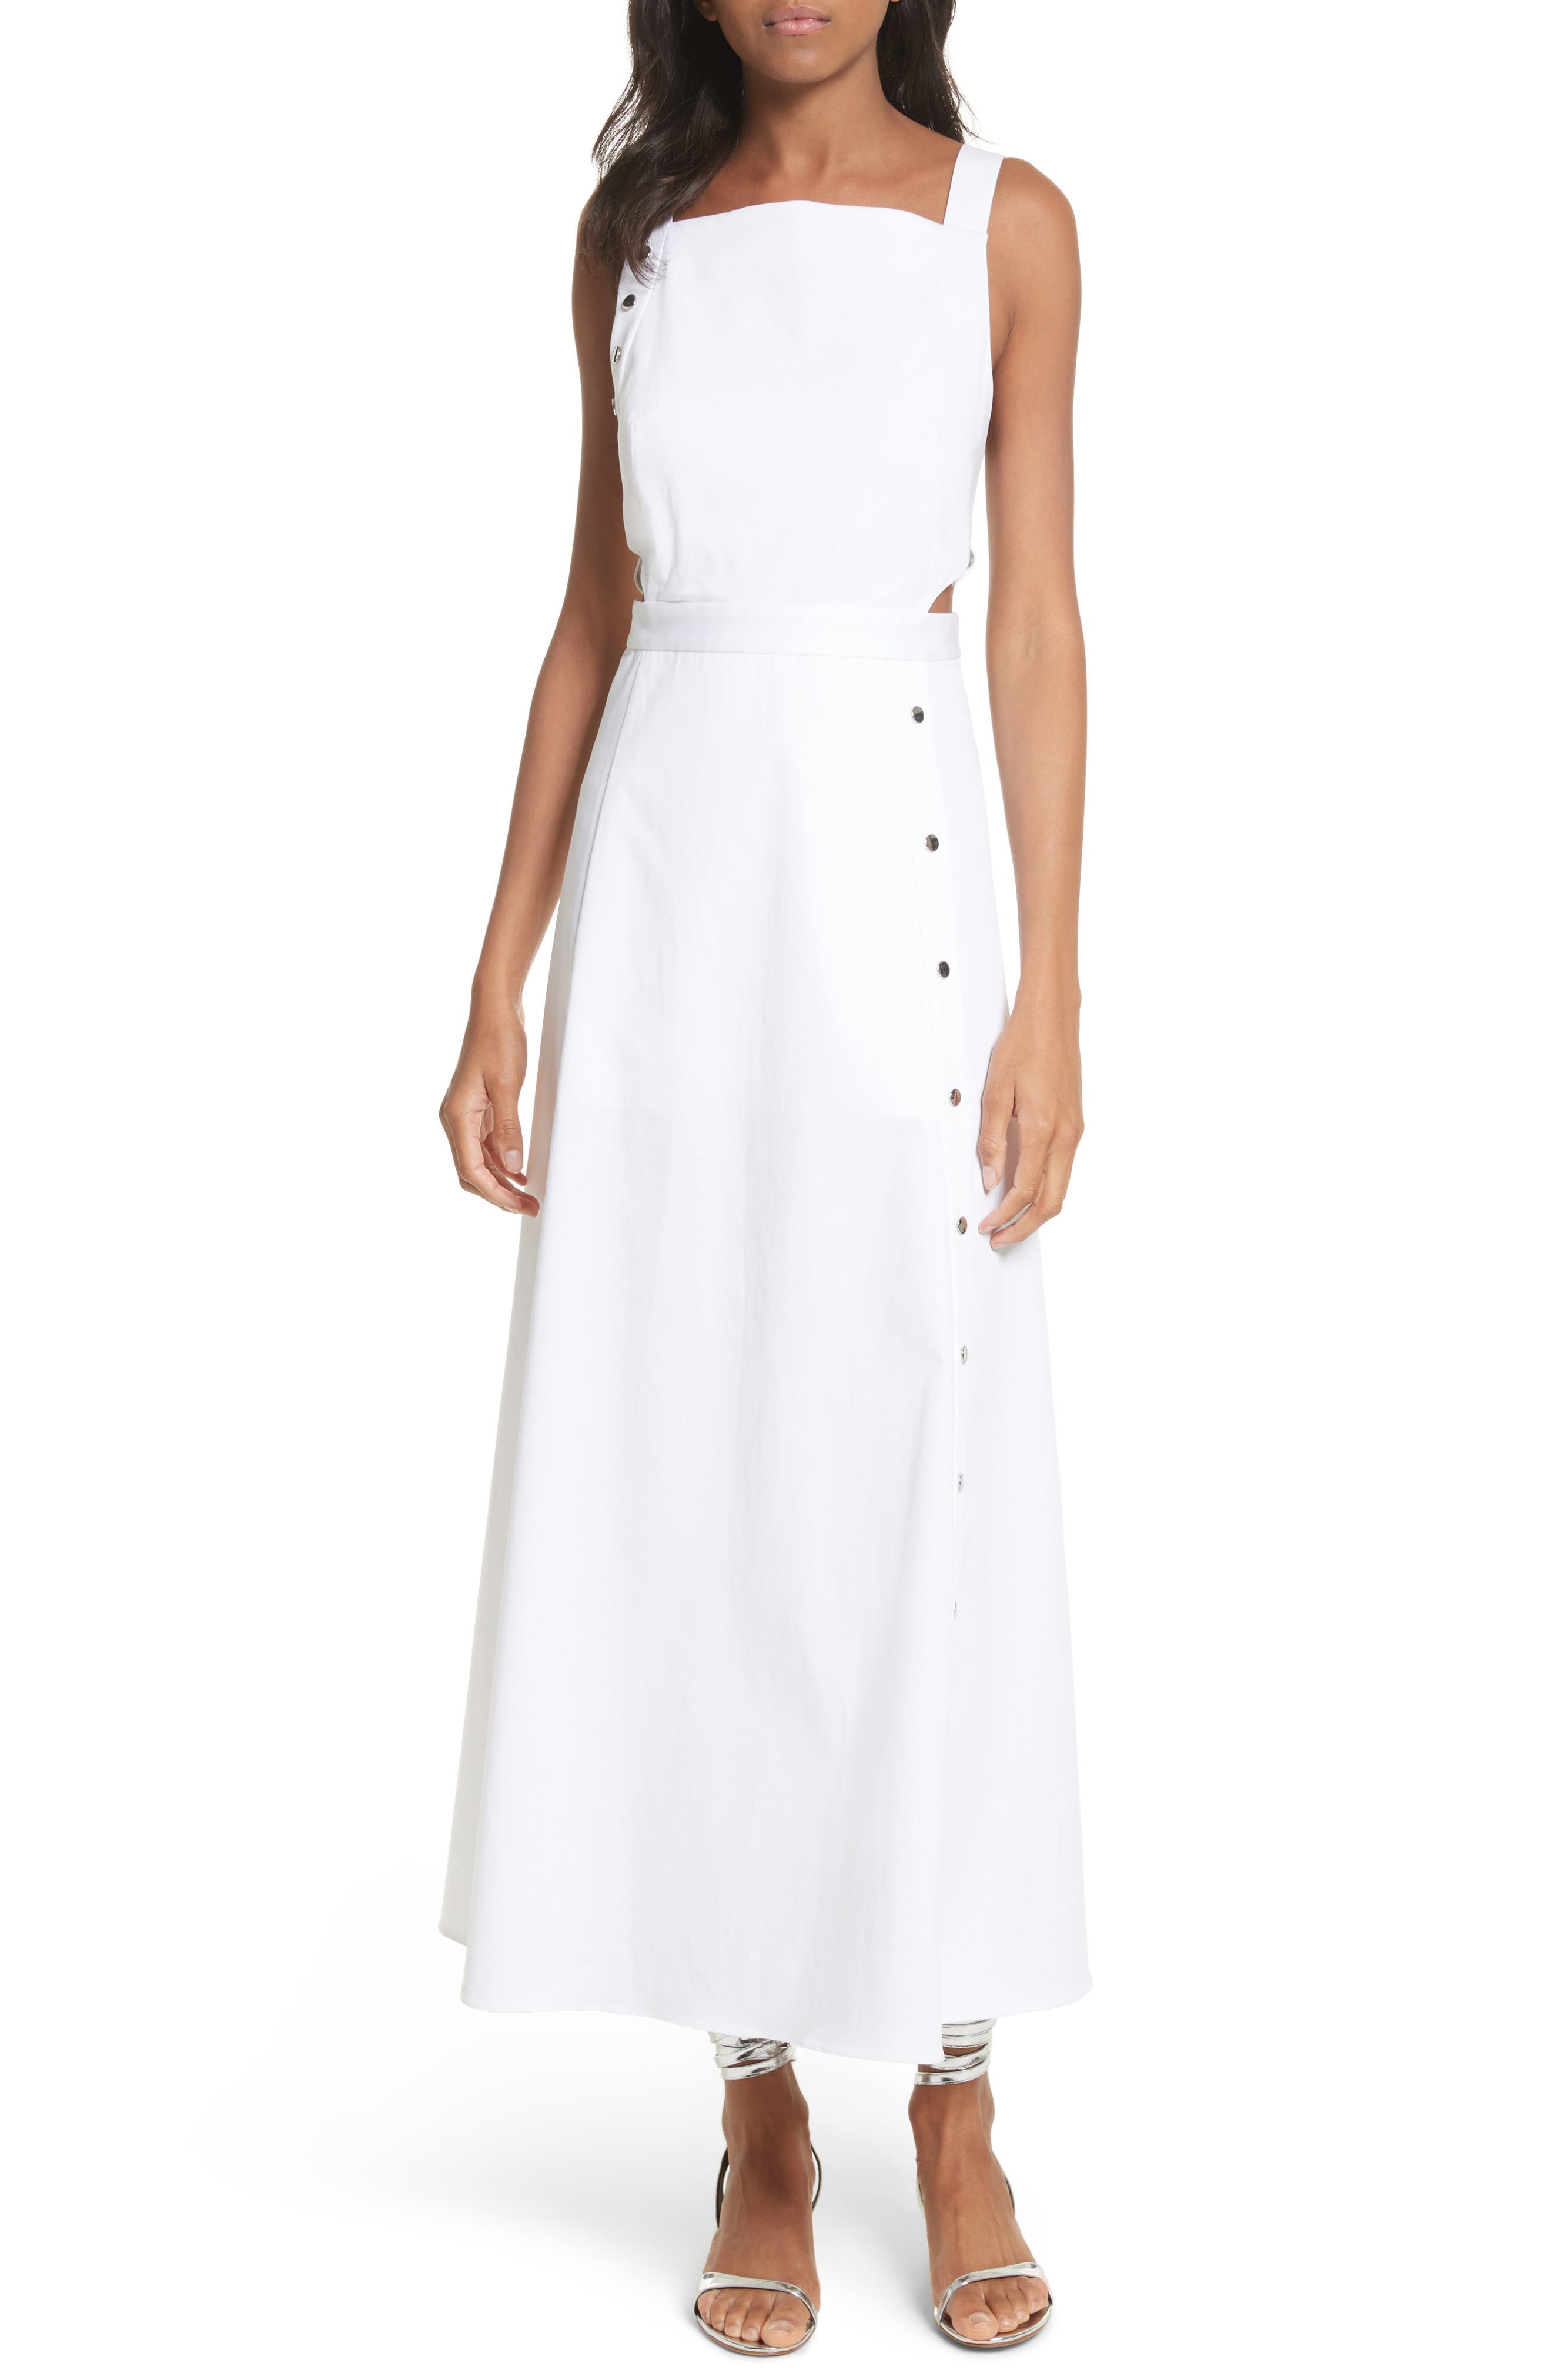 Crosby Snap Strappy Dress,                         Main,                         color, 100